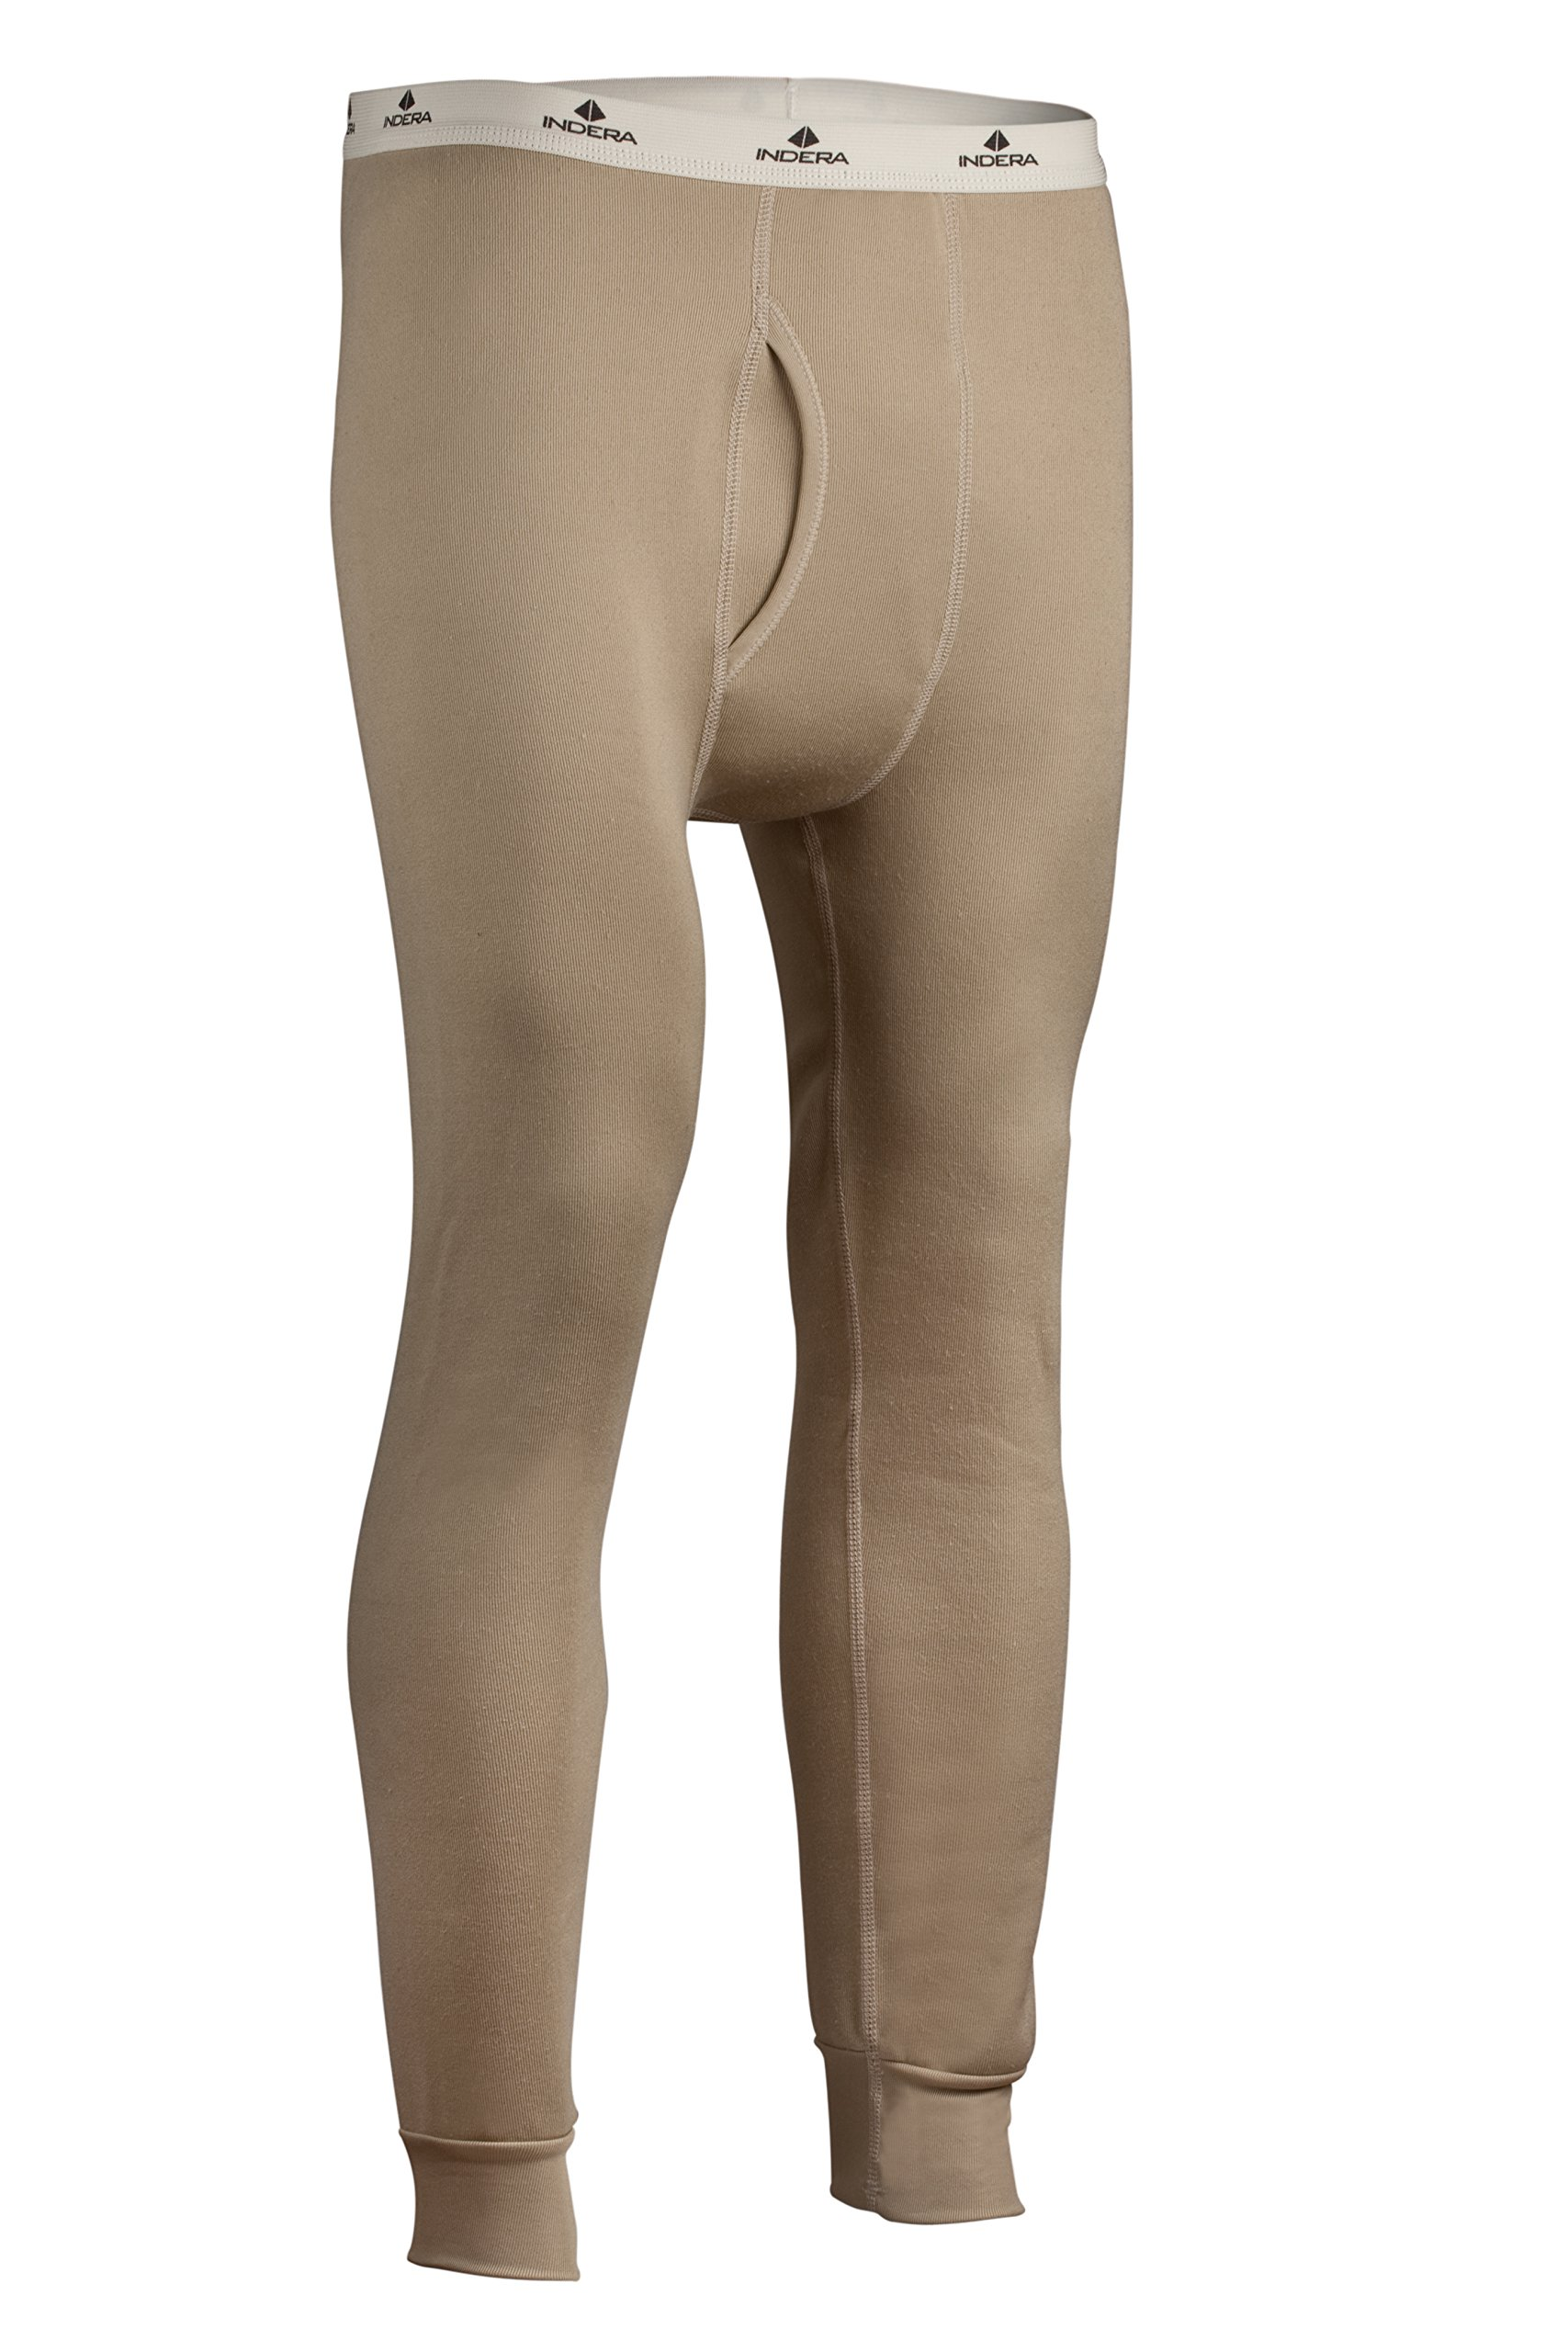 Indera Men's Military Weight Fleeced Polyester Thermal Underwear Pant, Sand, Large by Indera